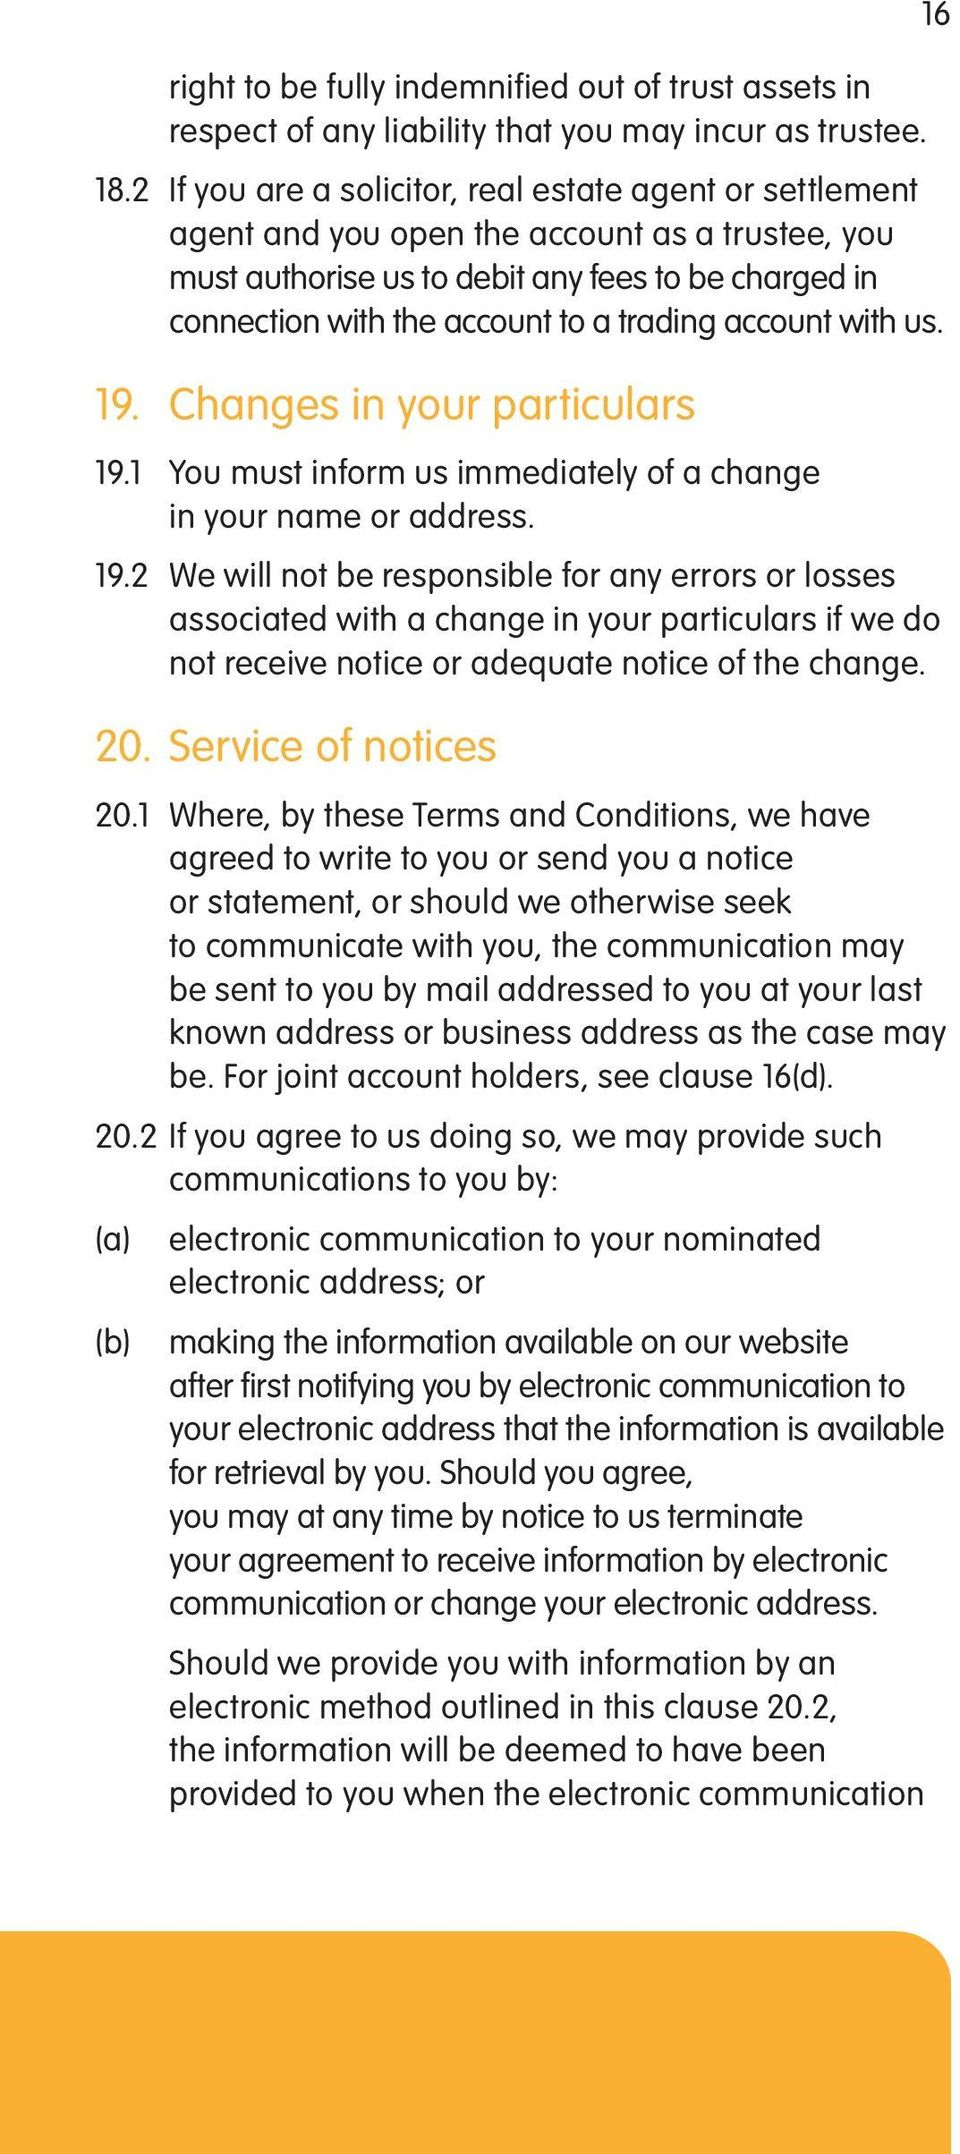 trading account with us. 19. Changes in your particulars 19.1 You must inform us immediately of a change in your name or address. 19.2 We will not be responsible for any errors or losses associated with a change in your particulars if we do not receive notice or adequate notice of the change.